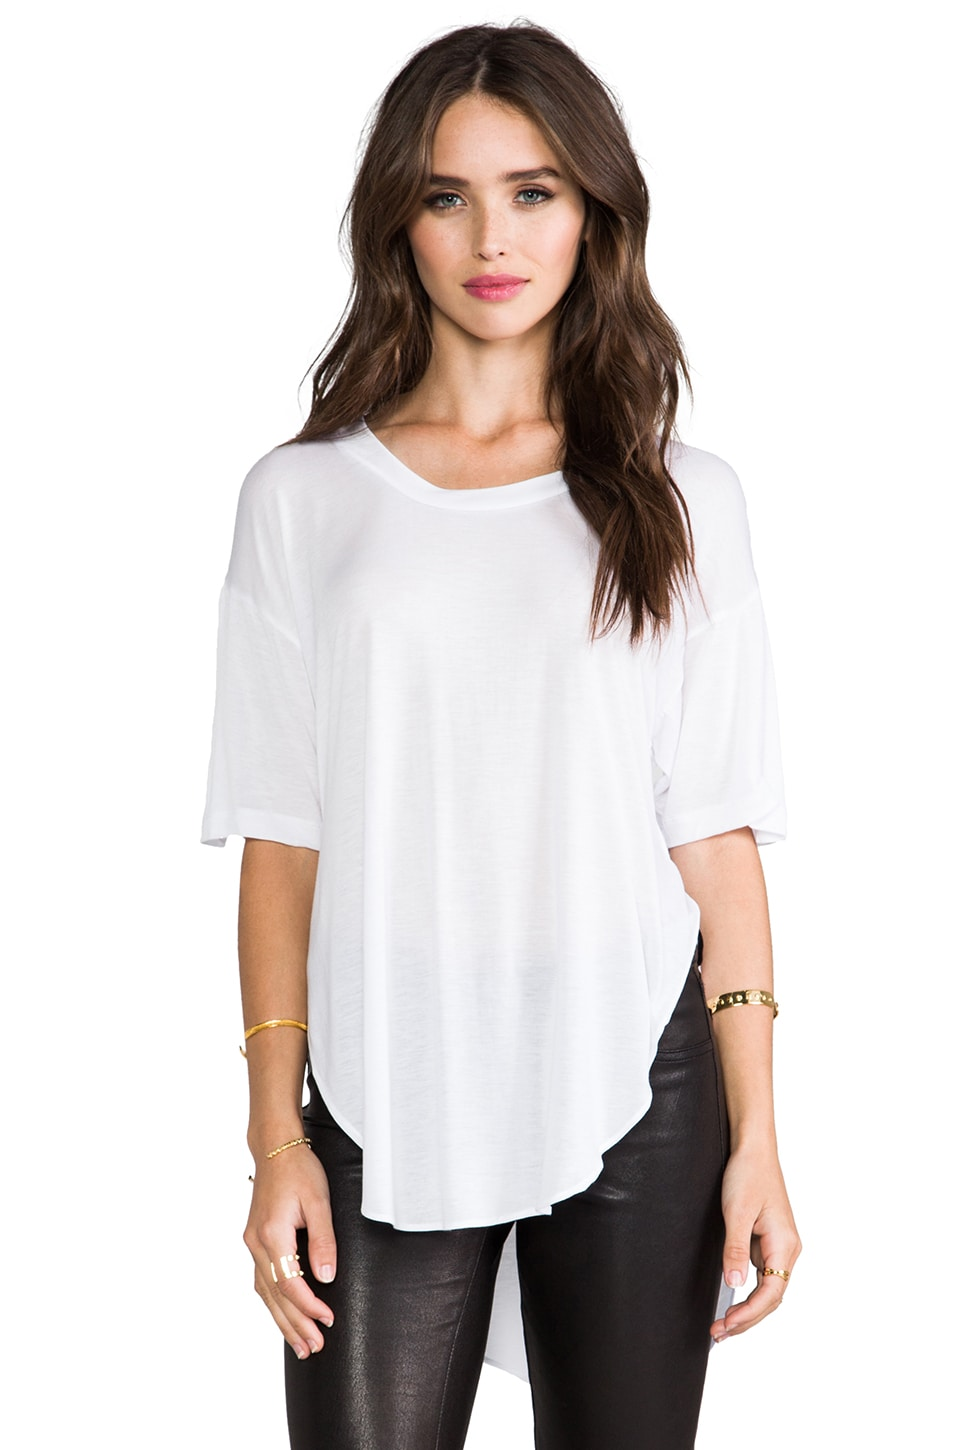 Pencey Standard Oversized T in White